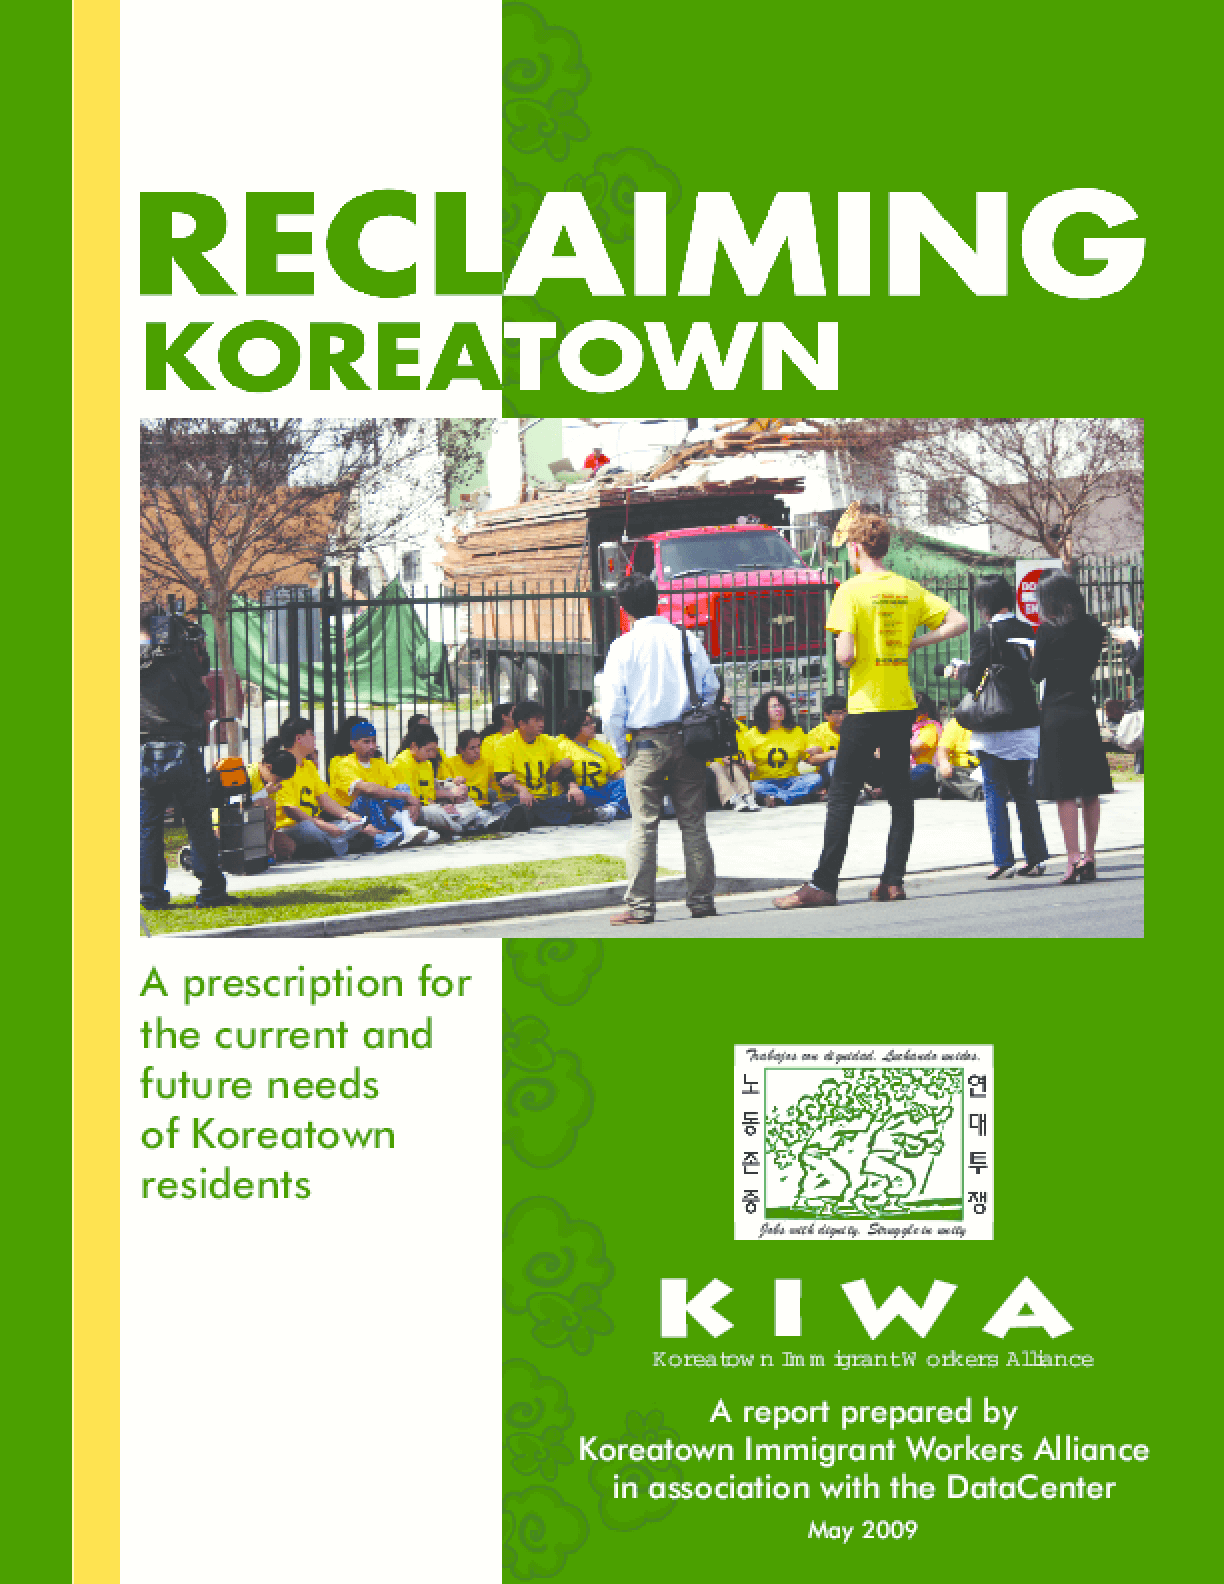 ReClaiming Koreatown: A prescription for the current and future needs of Koreatown residents